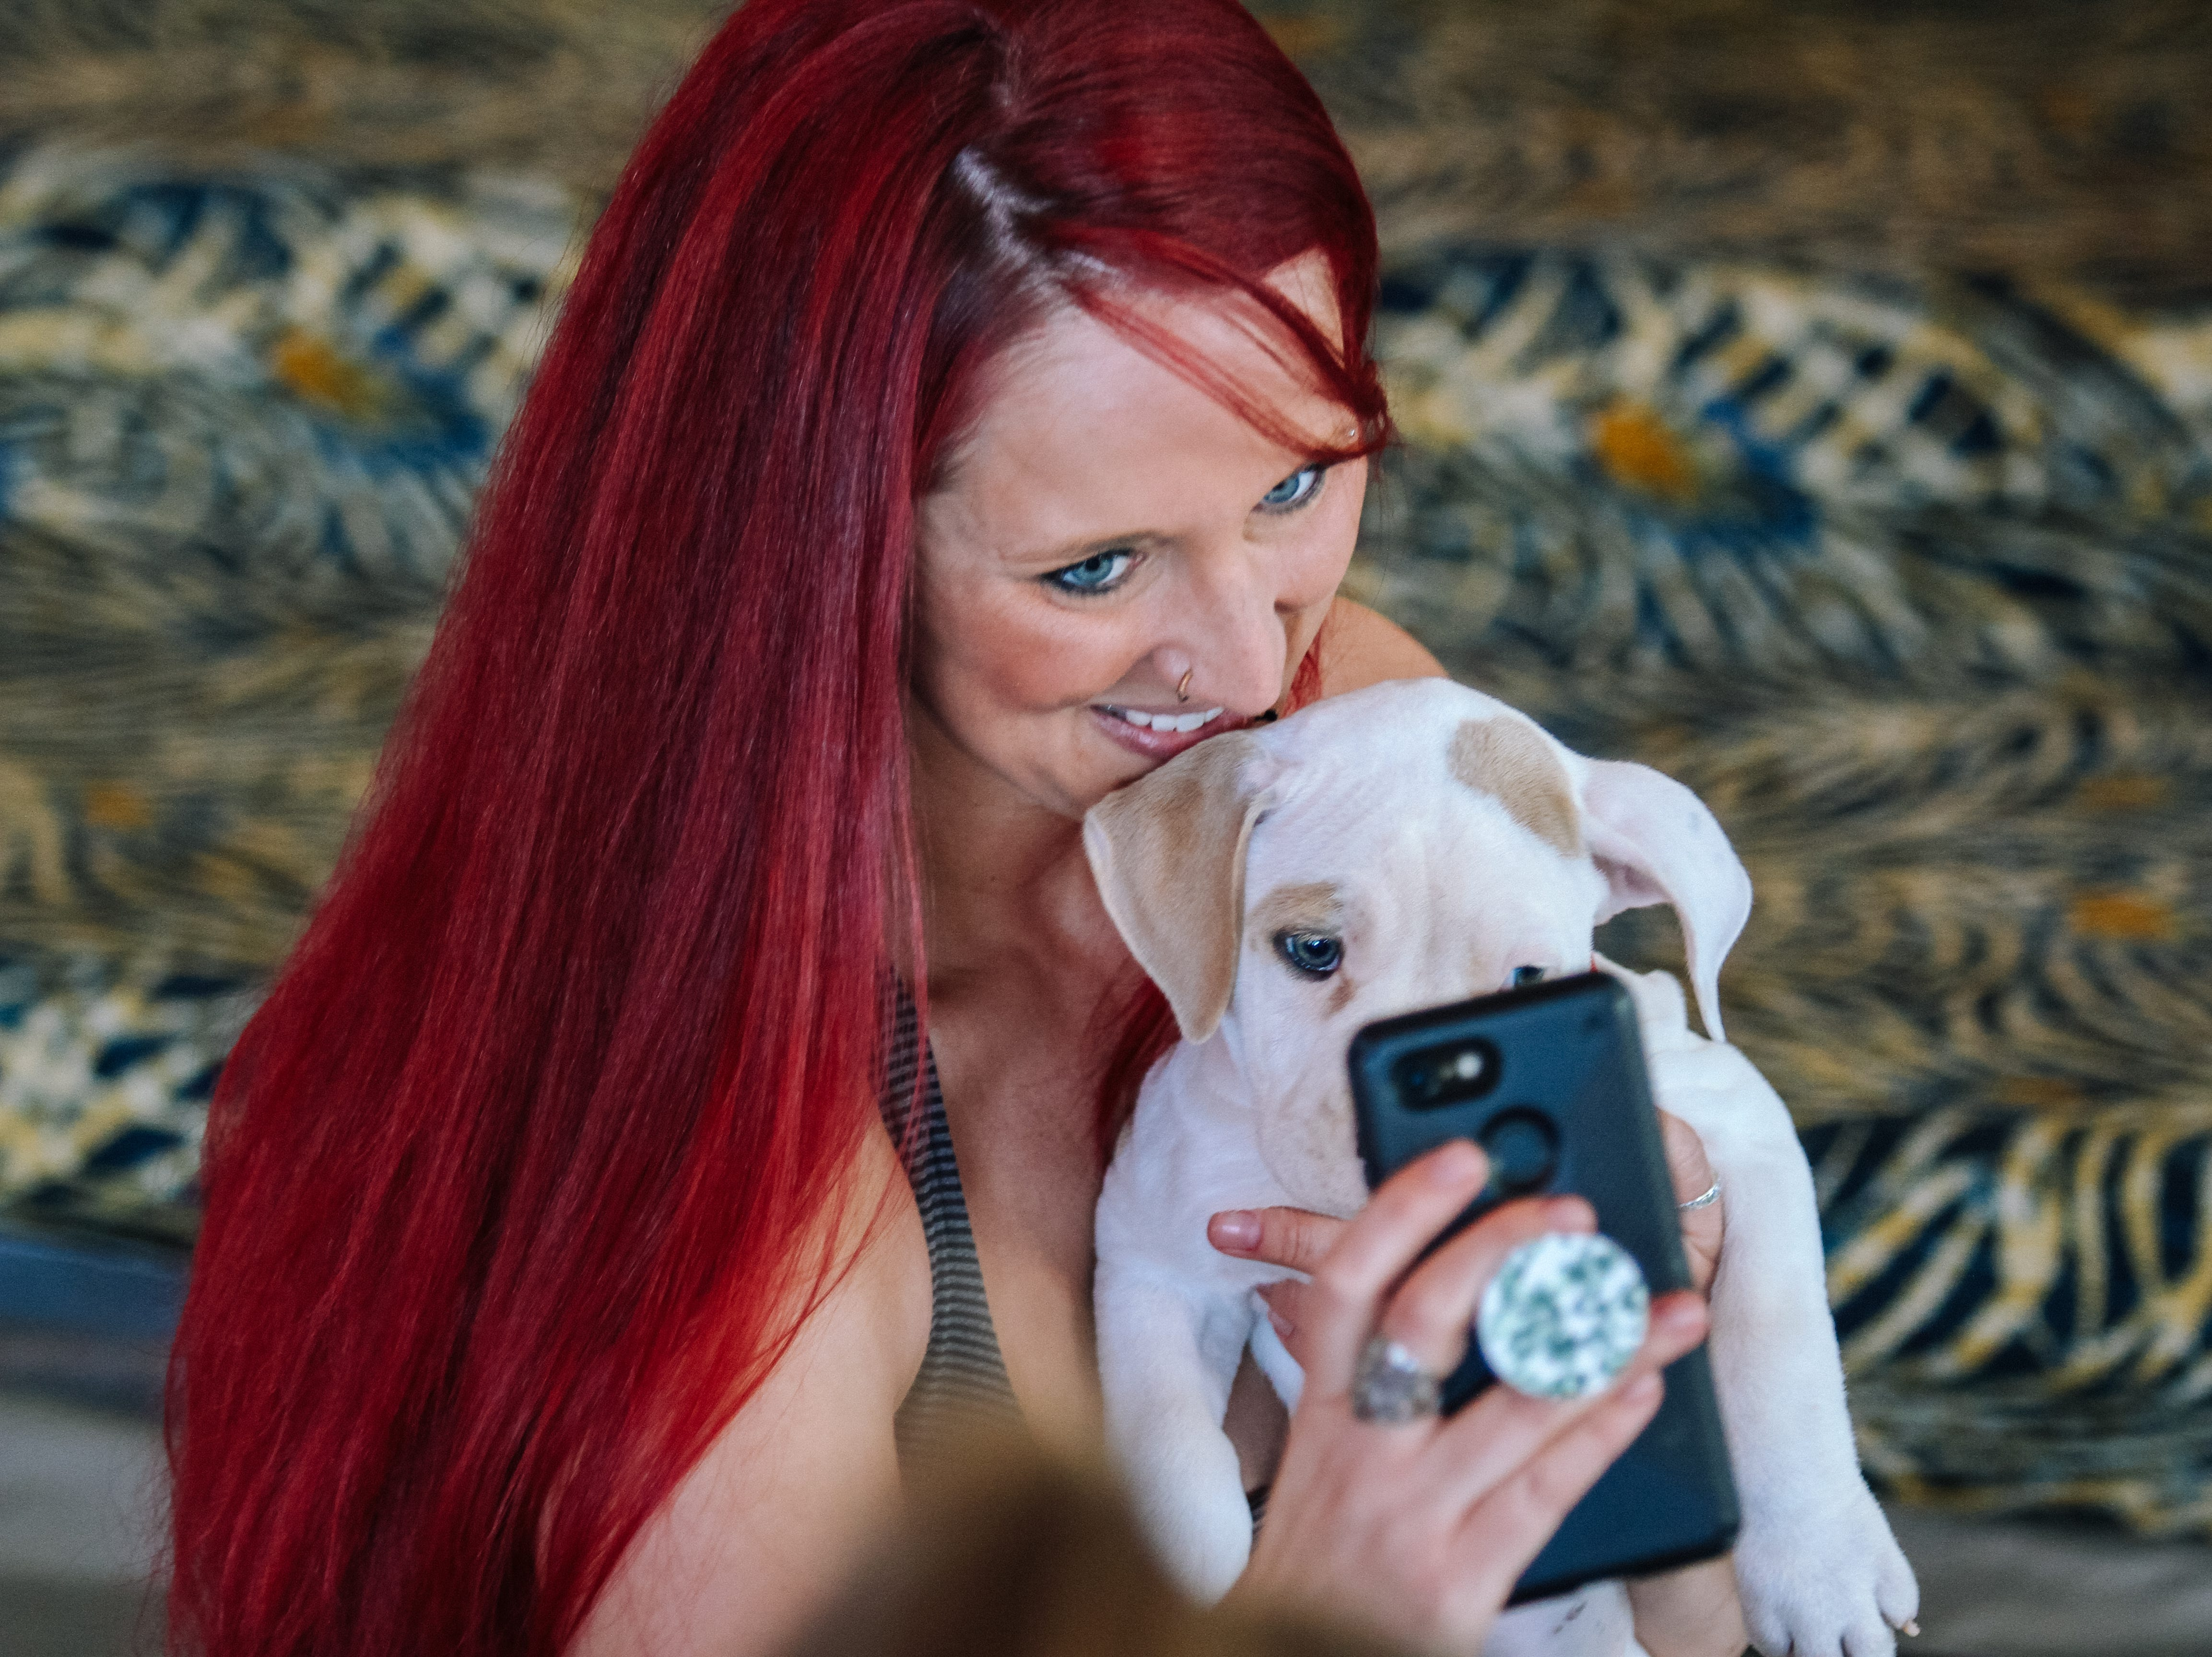 Attendees play with puppies at Puppies, Pilates and Prosecco, an event hosted by Almost There Foster Care at the Wrigley Mansion in Phoenix on April 13, 2019.